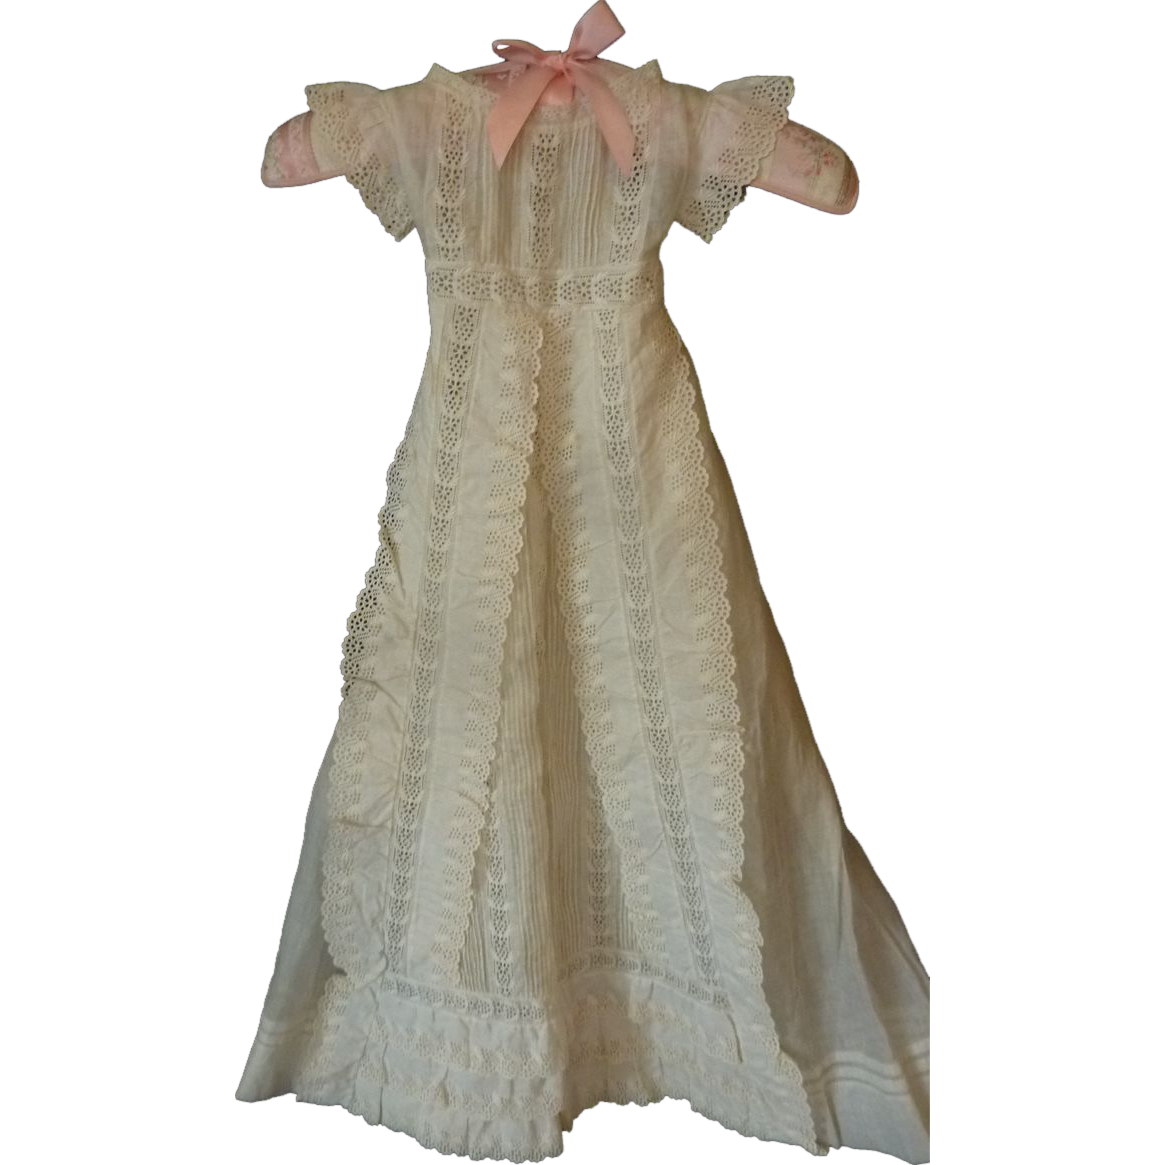 Adorable Antique Baby Christening Gown Robe Dress Broderie